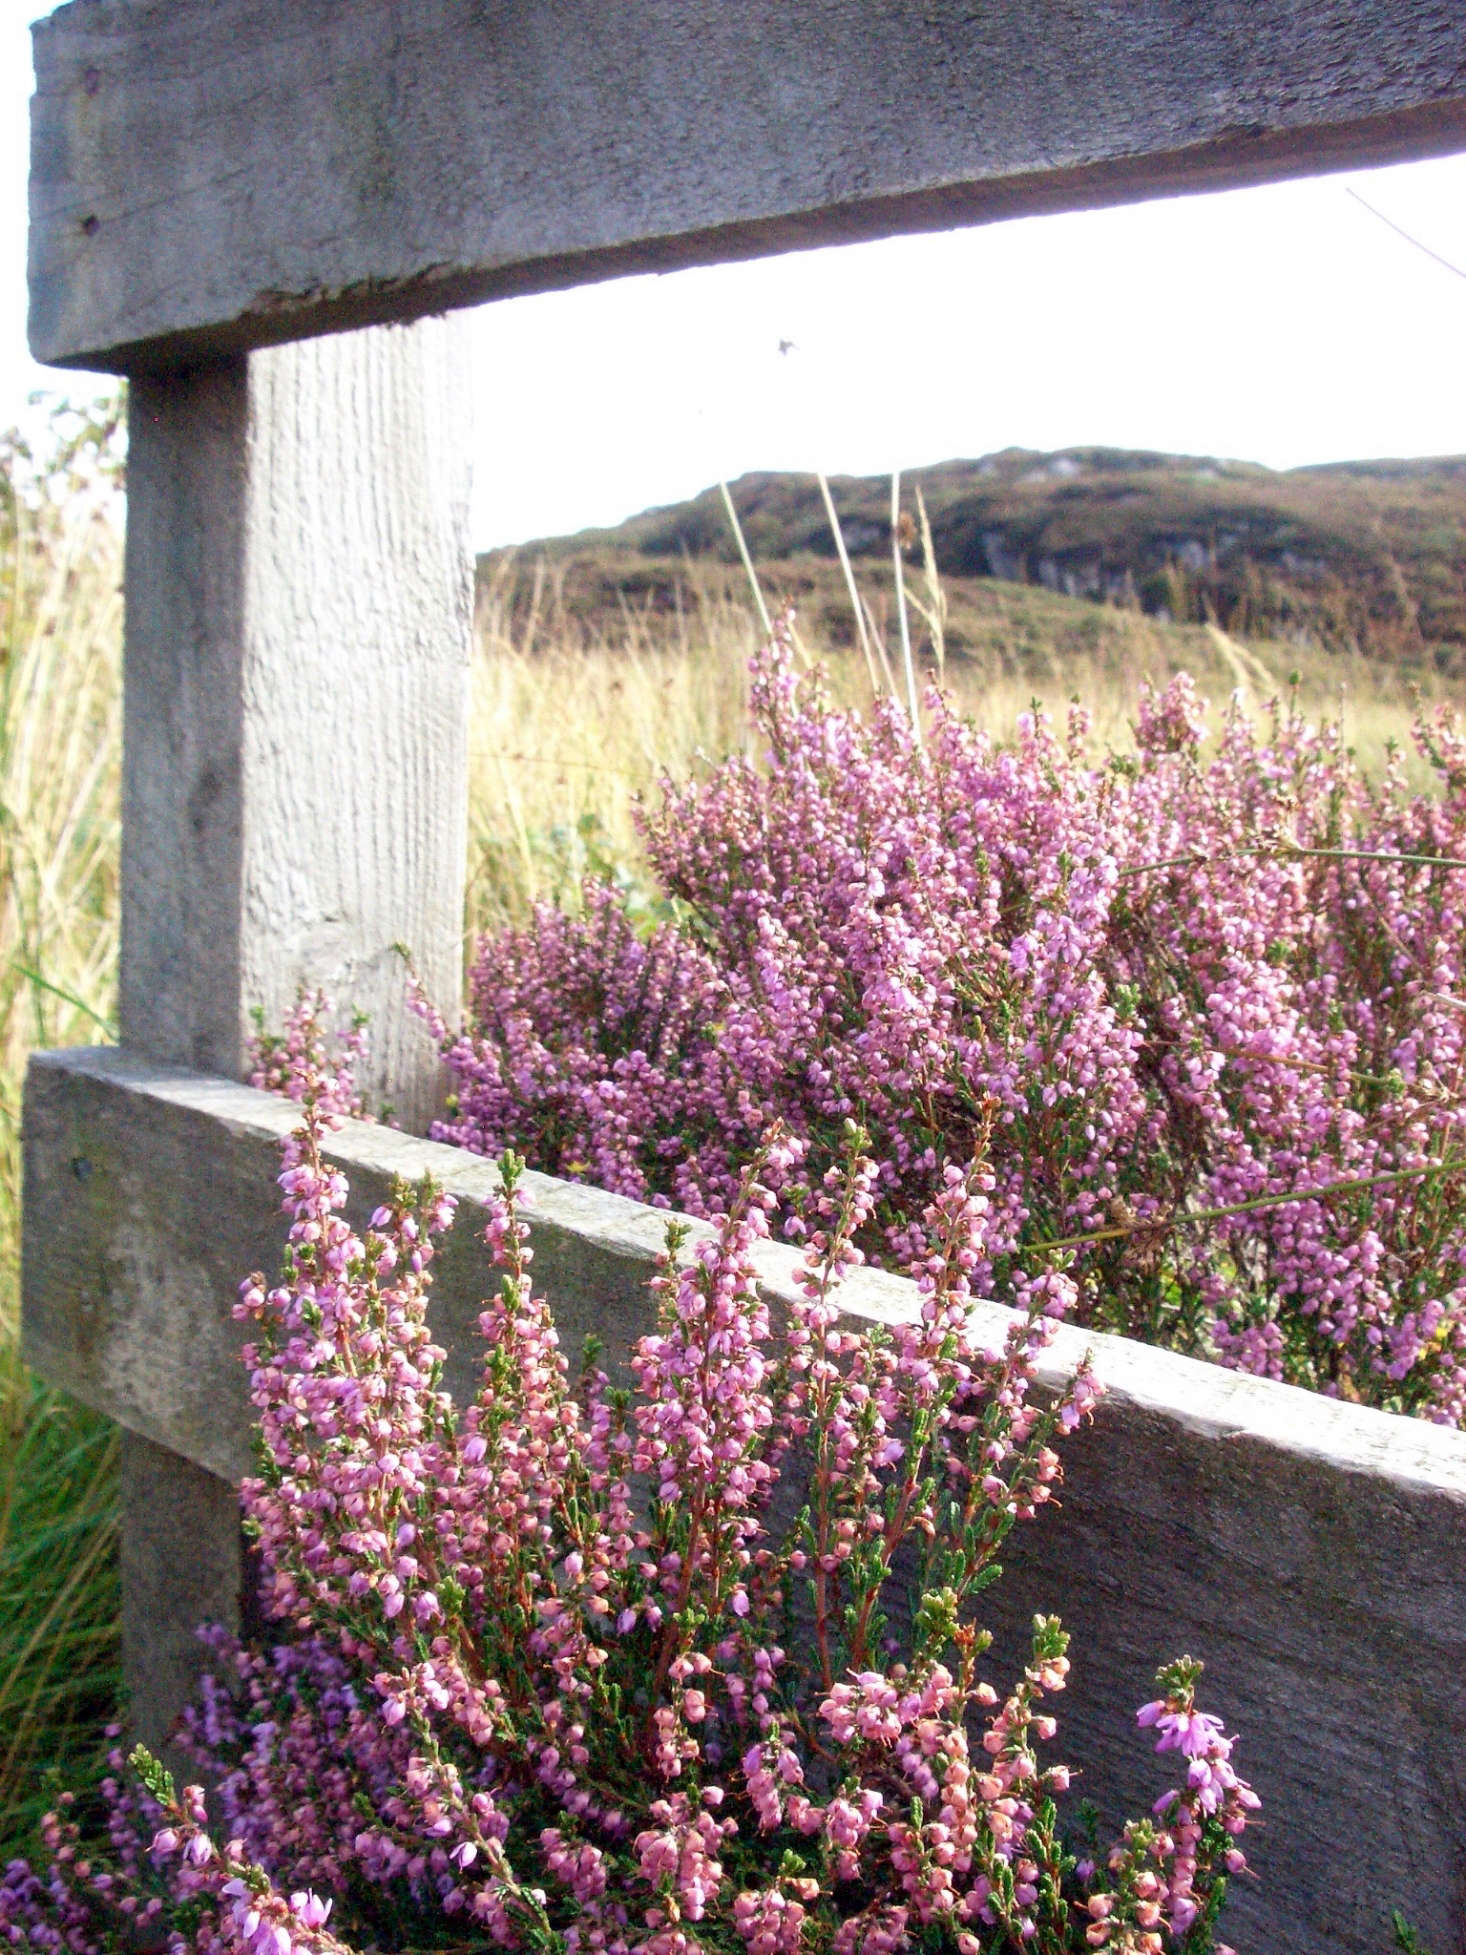 Heather in bloom on the Isle of Mull. Photograph by Saskia Heijltjes via Flickr.